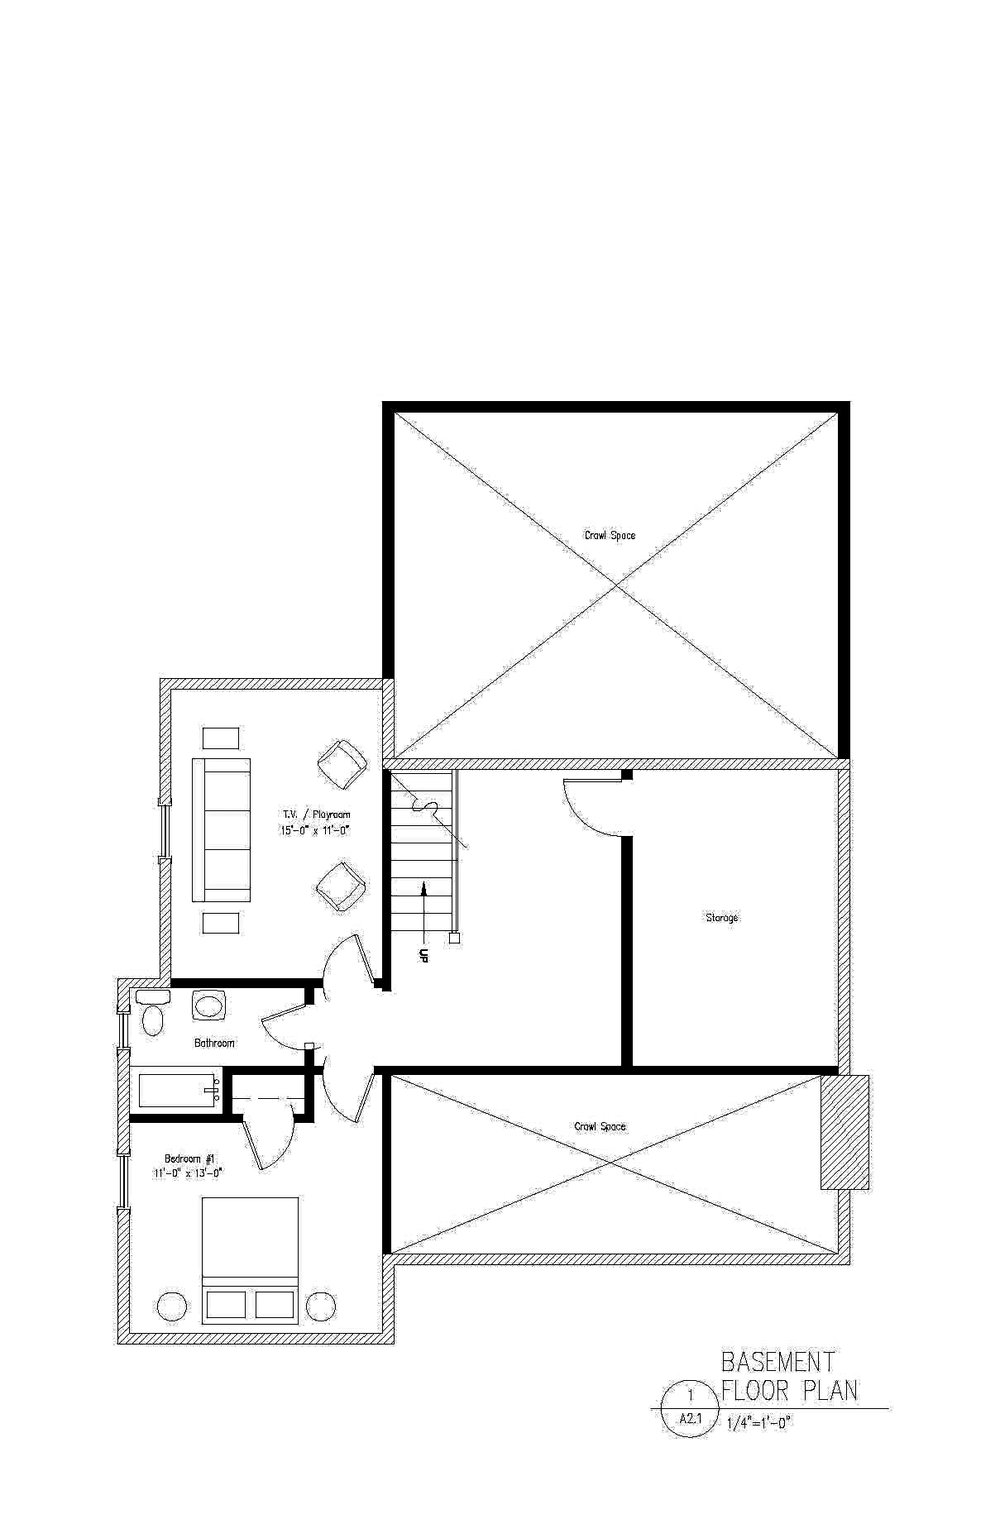 Terrace Floor Plan.jpg